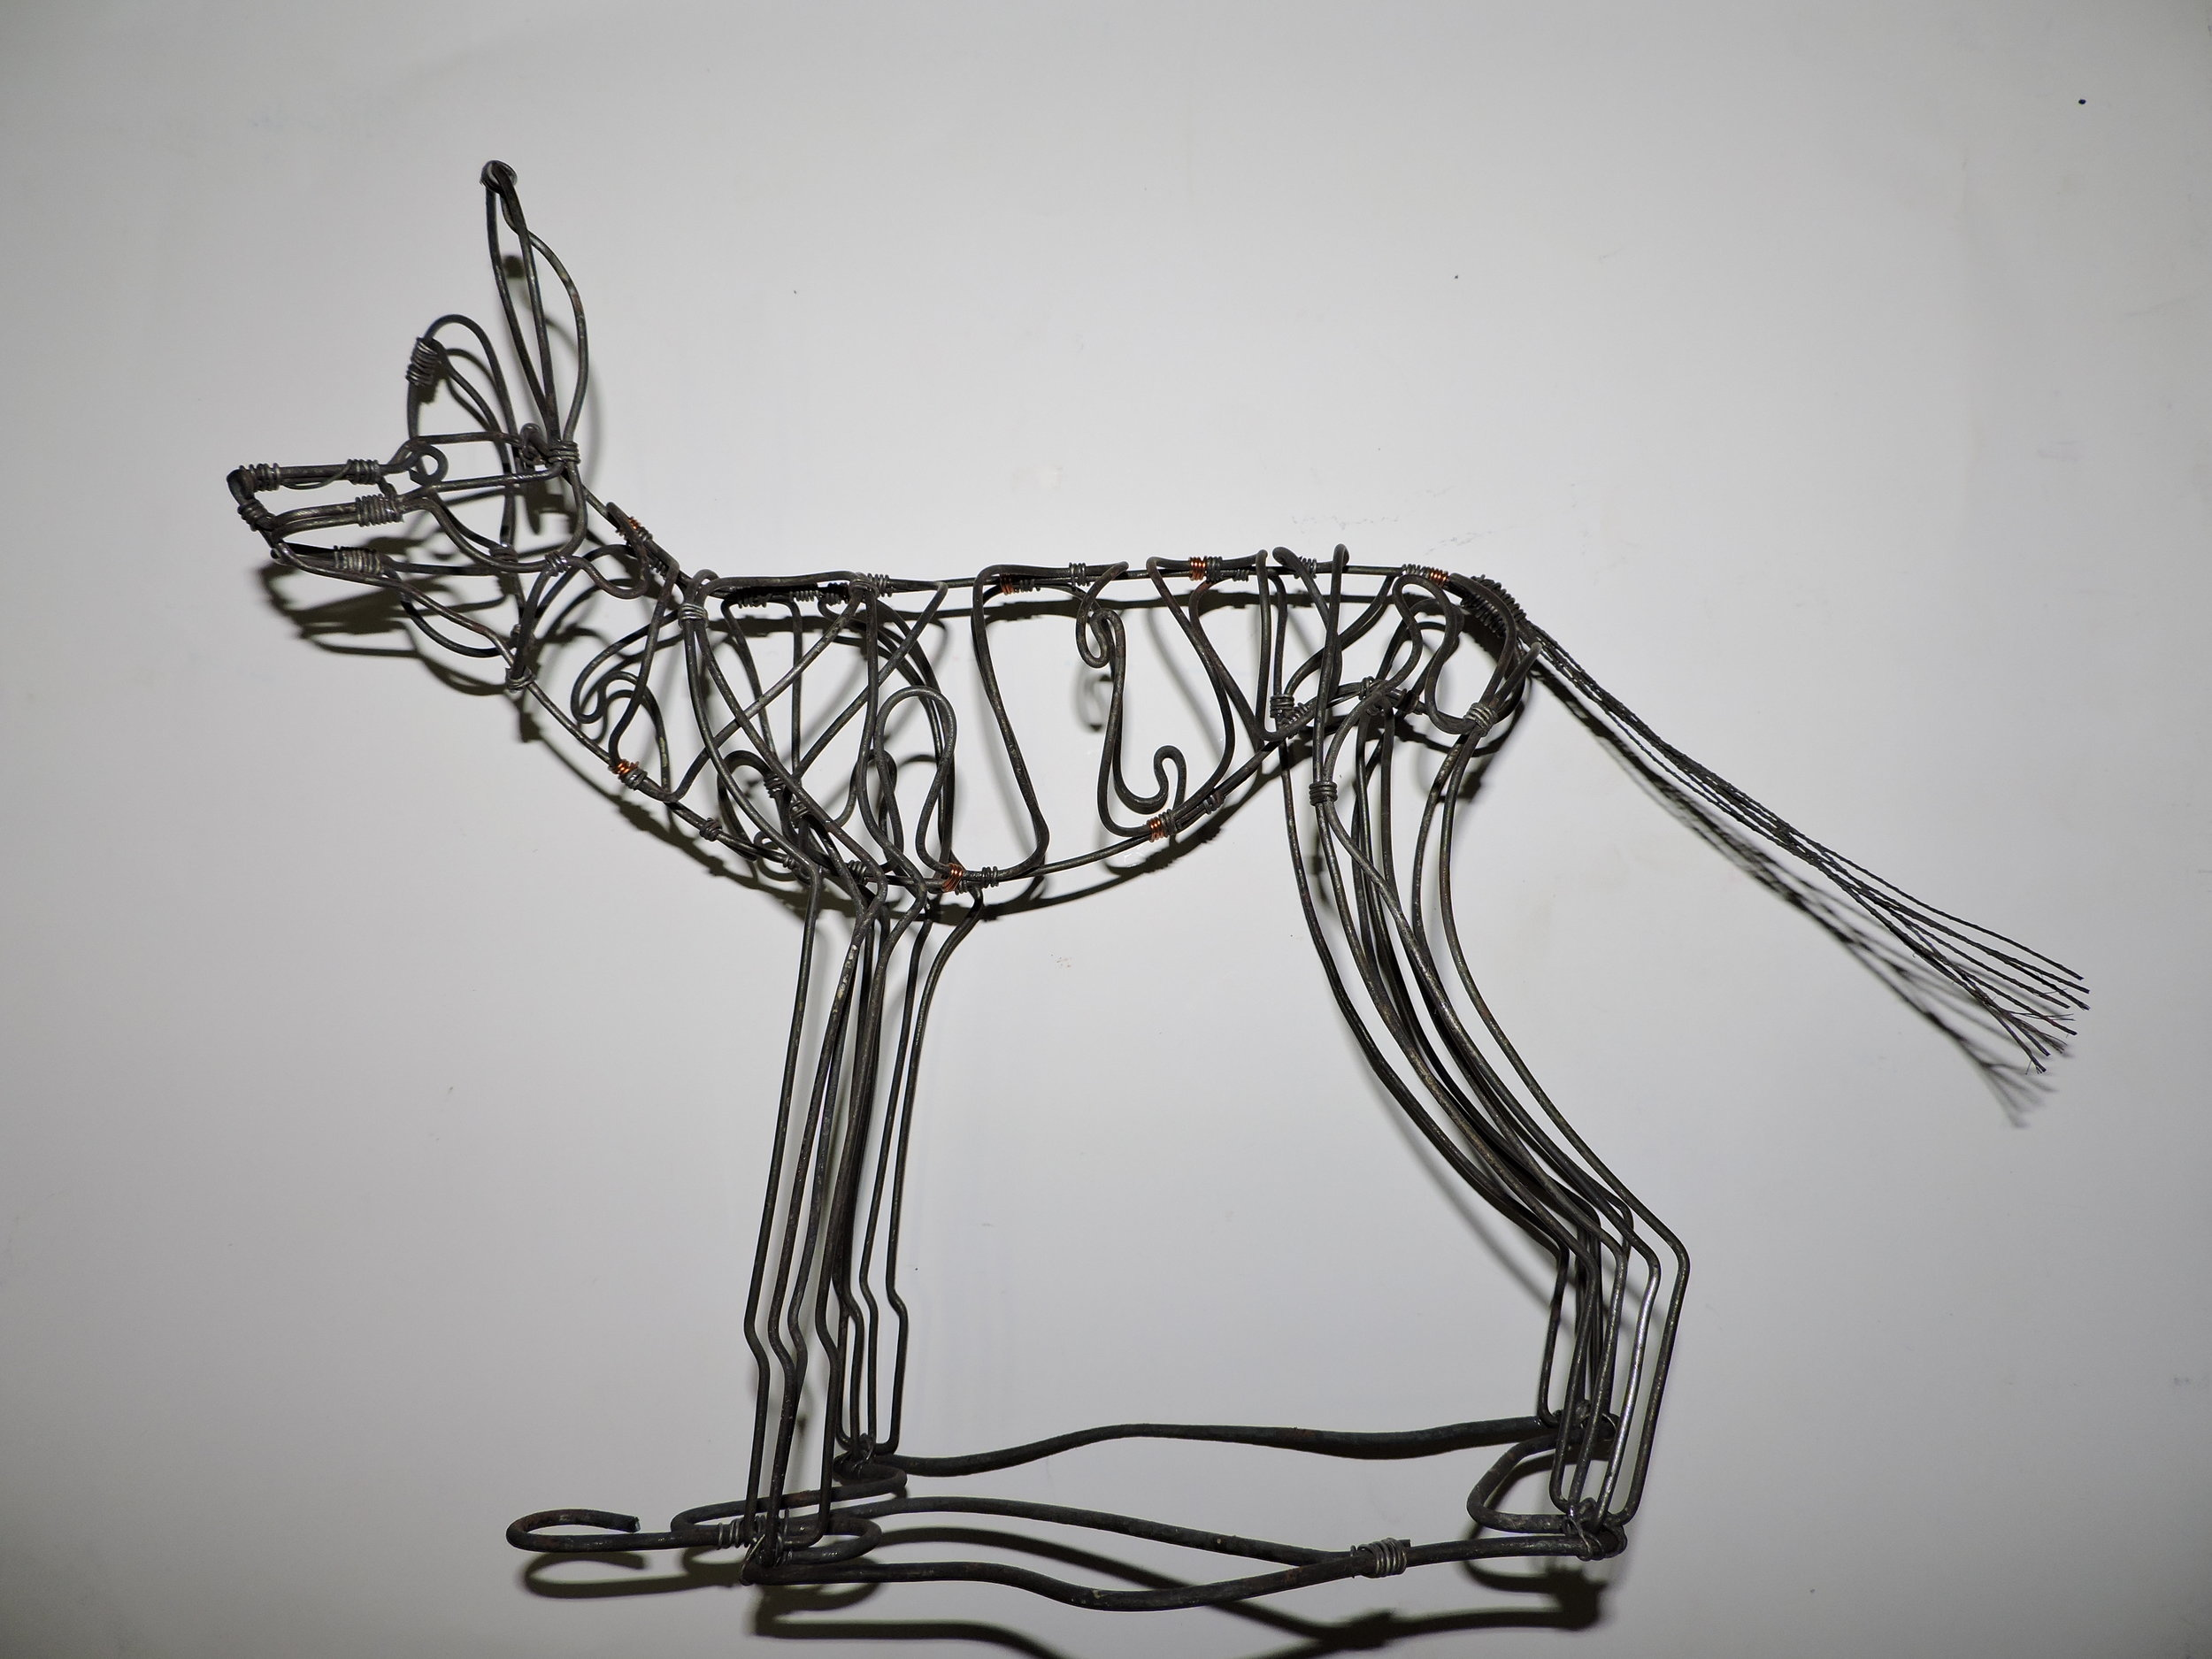 highlight: PDC's snare wire sculpture